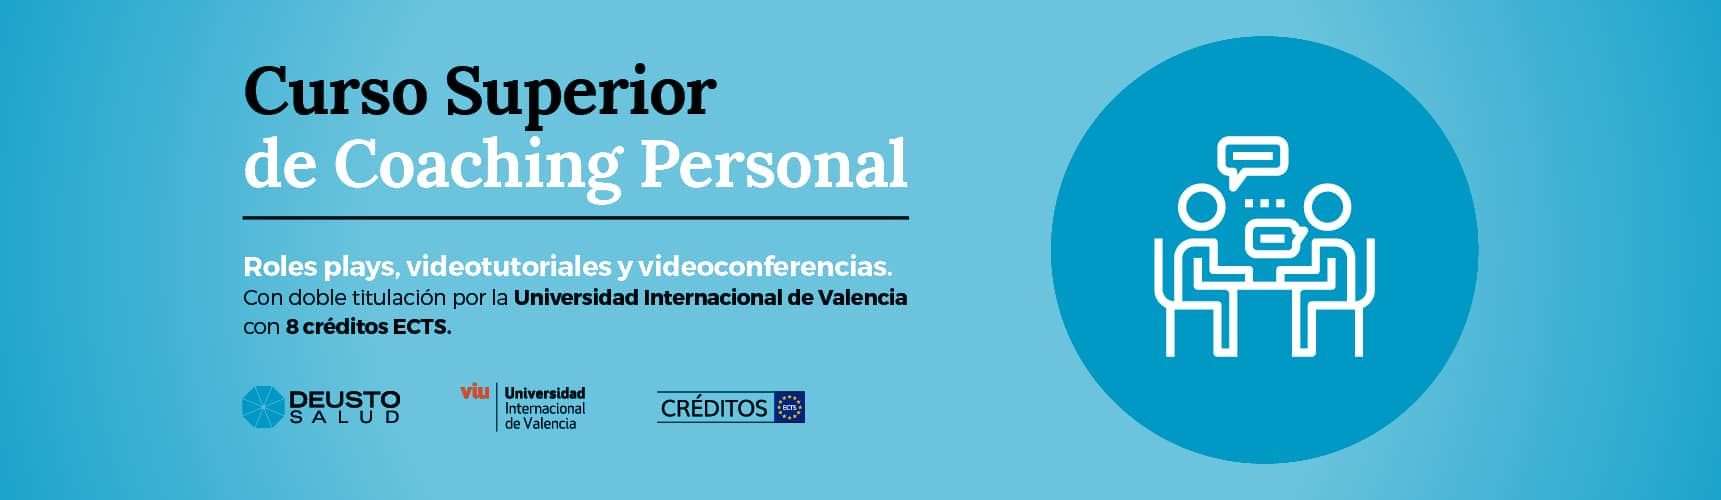 Curso Superior de Coaching Personal